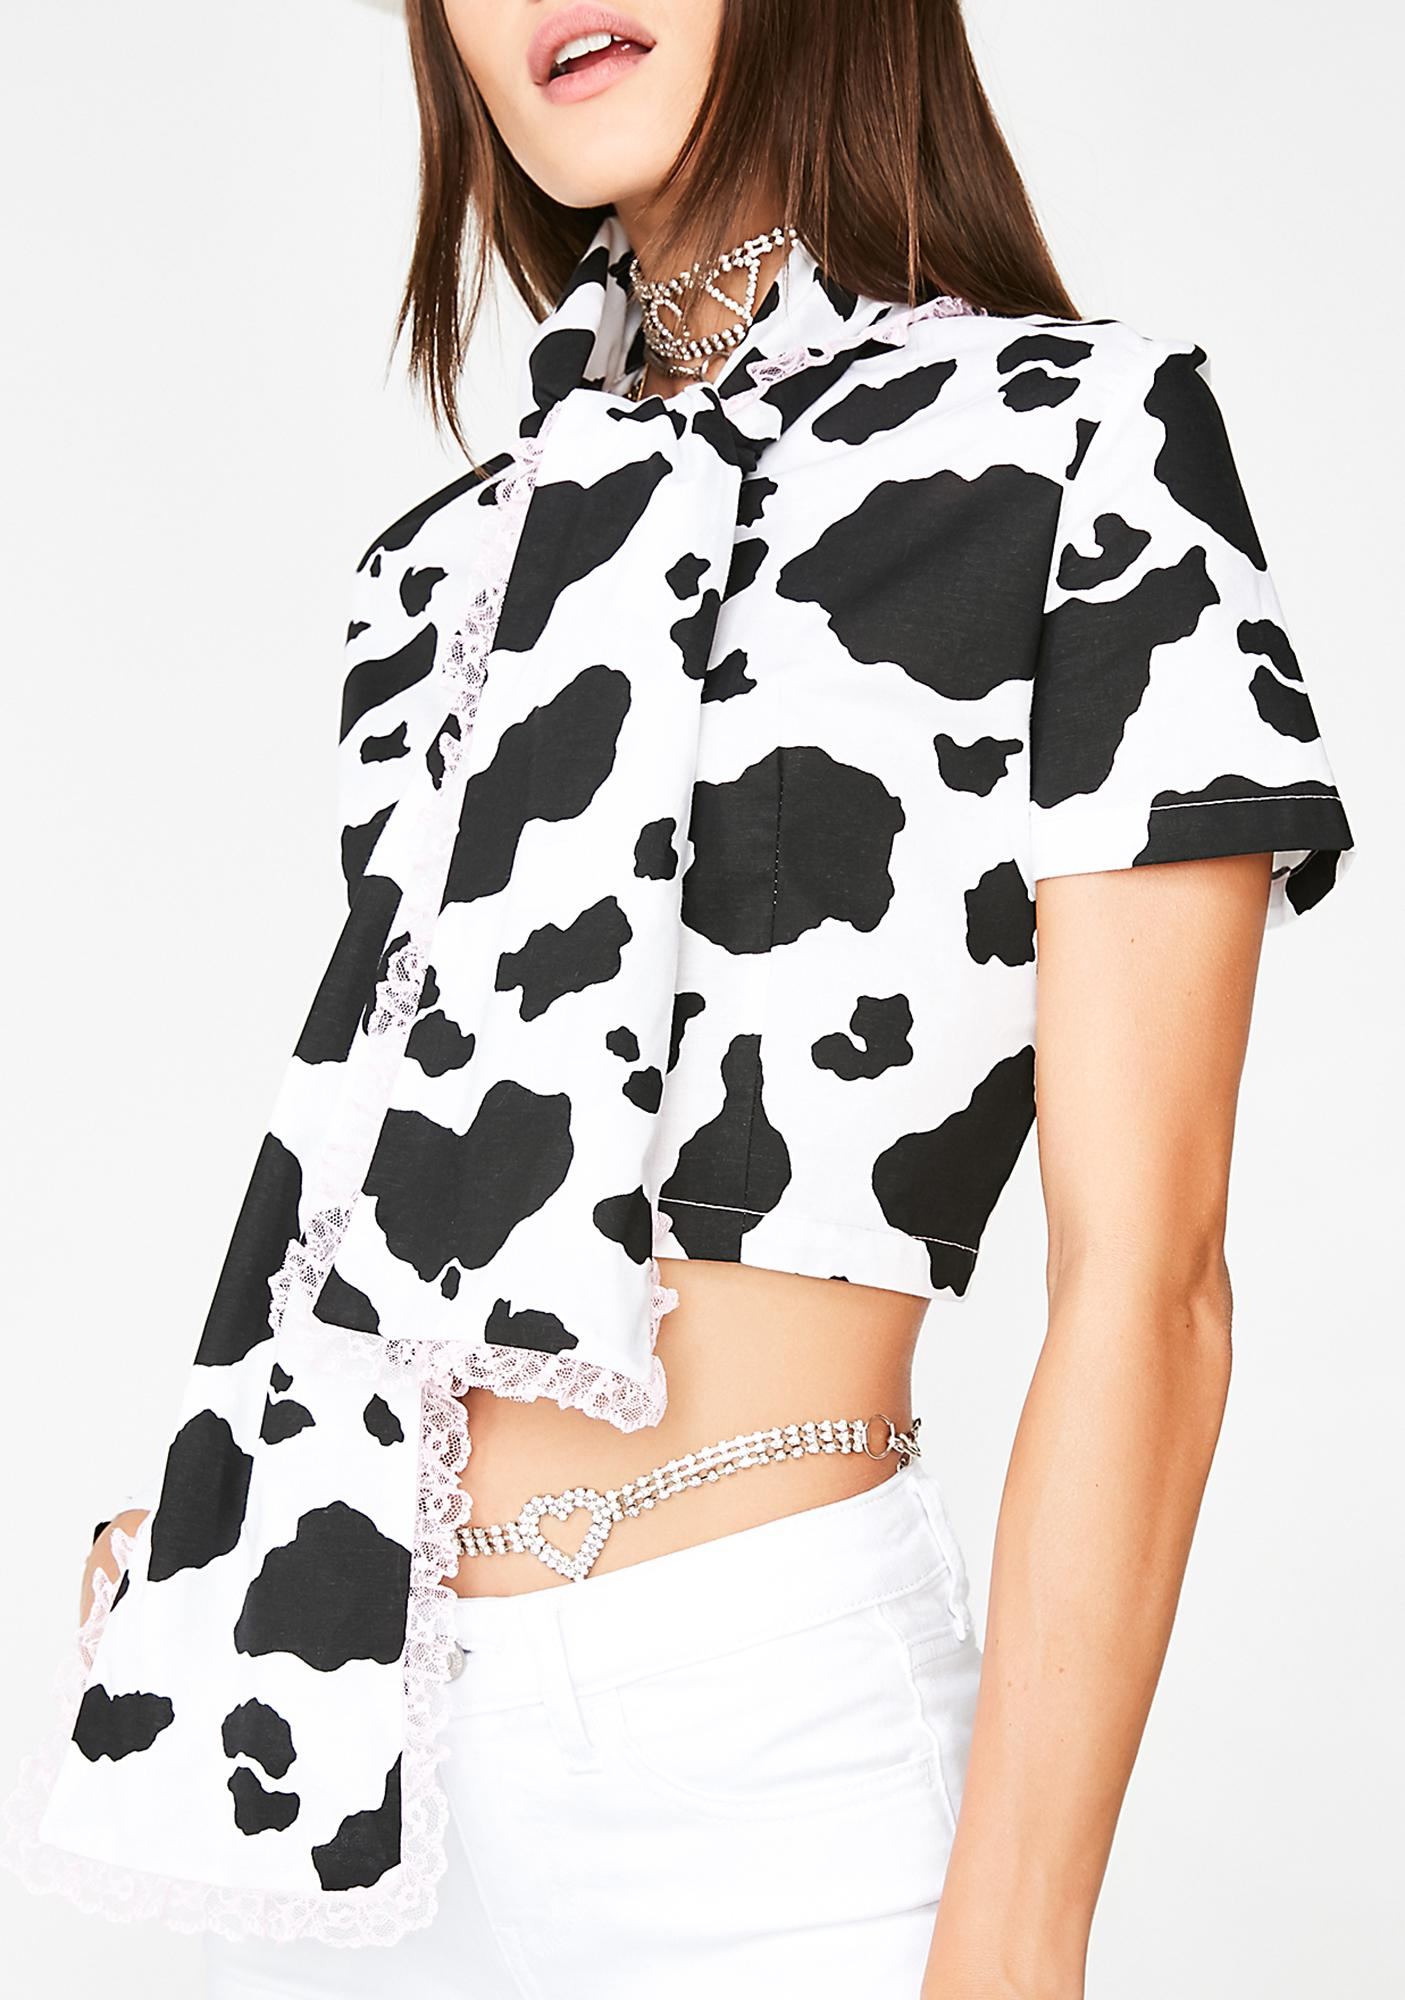 CheekLDN Holy Cow! Bow Shirt